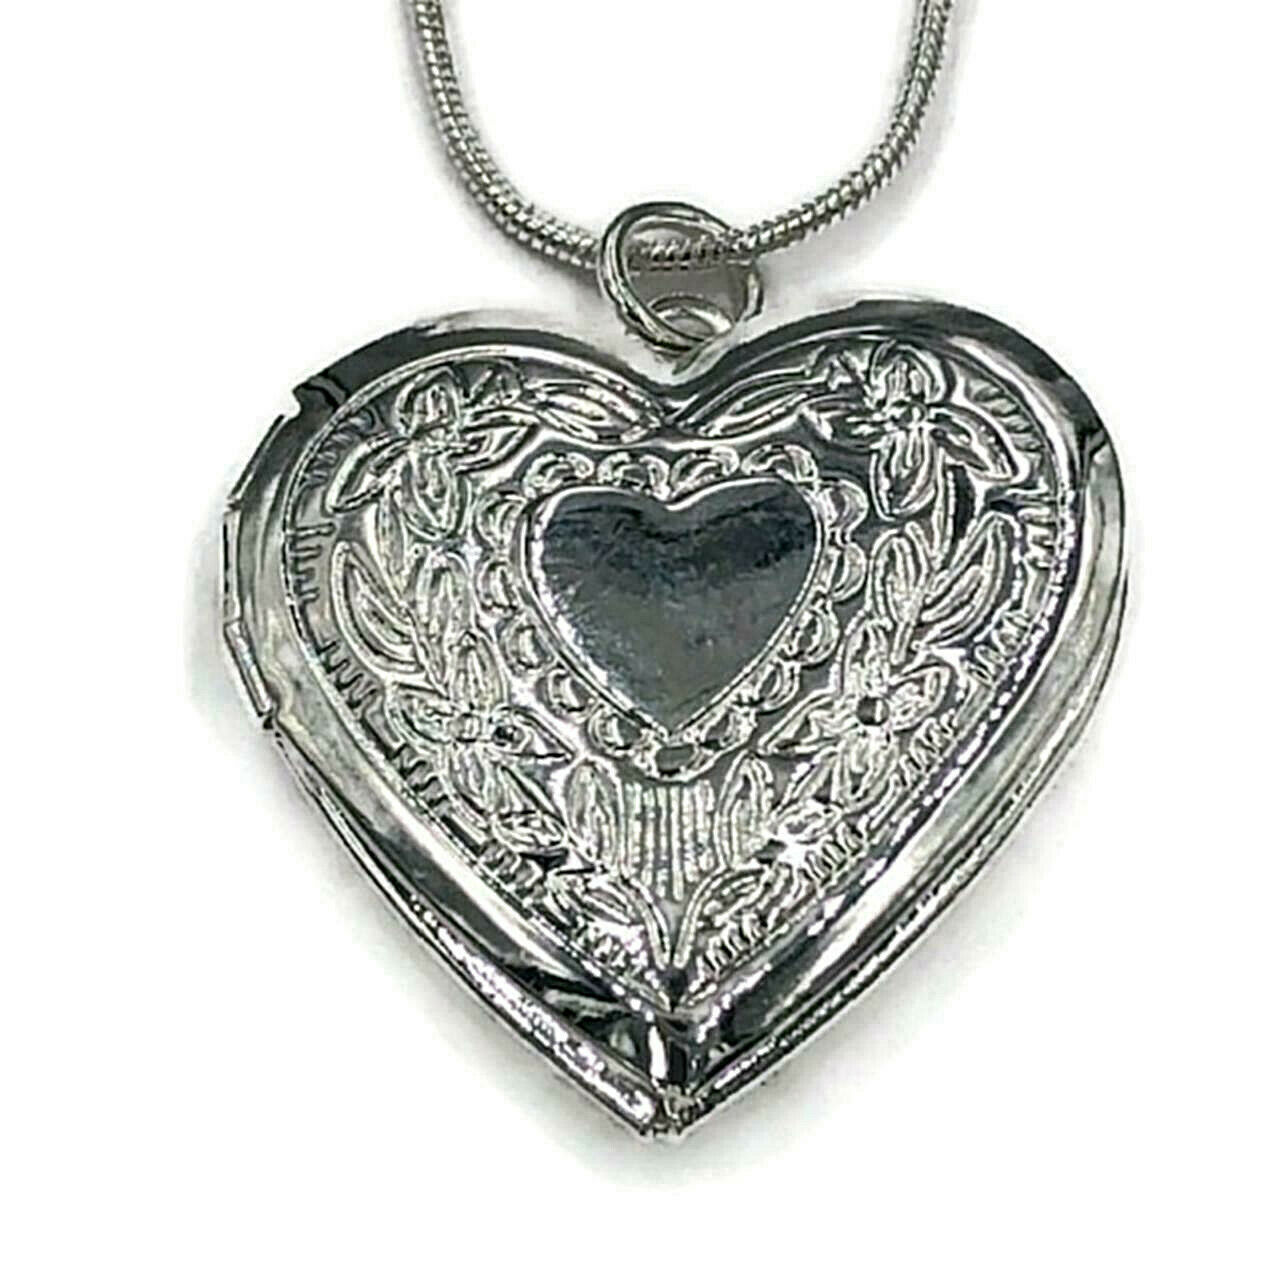 Primary image for Heart Photo Locket Pendant Necklace 925 Sterling Silver NEW